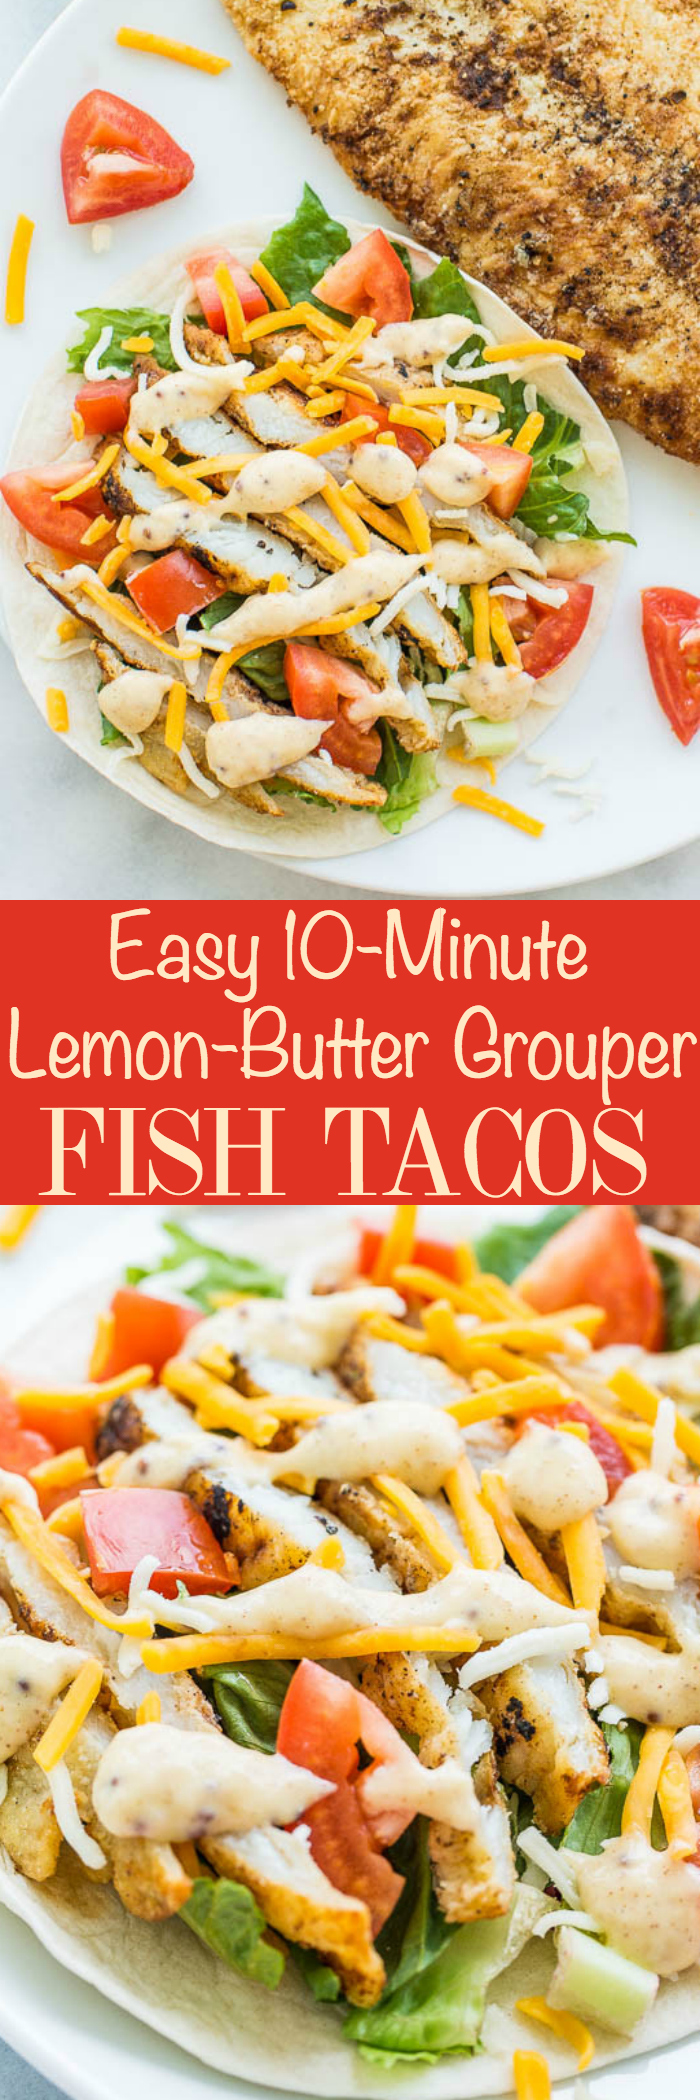 GrouperFishTacoesRecipes2016_1